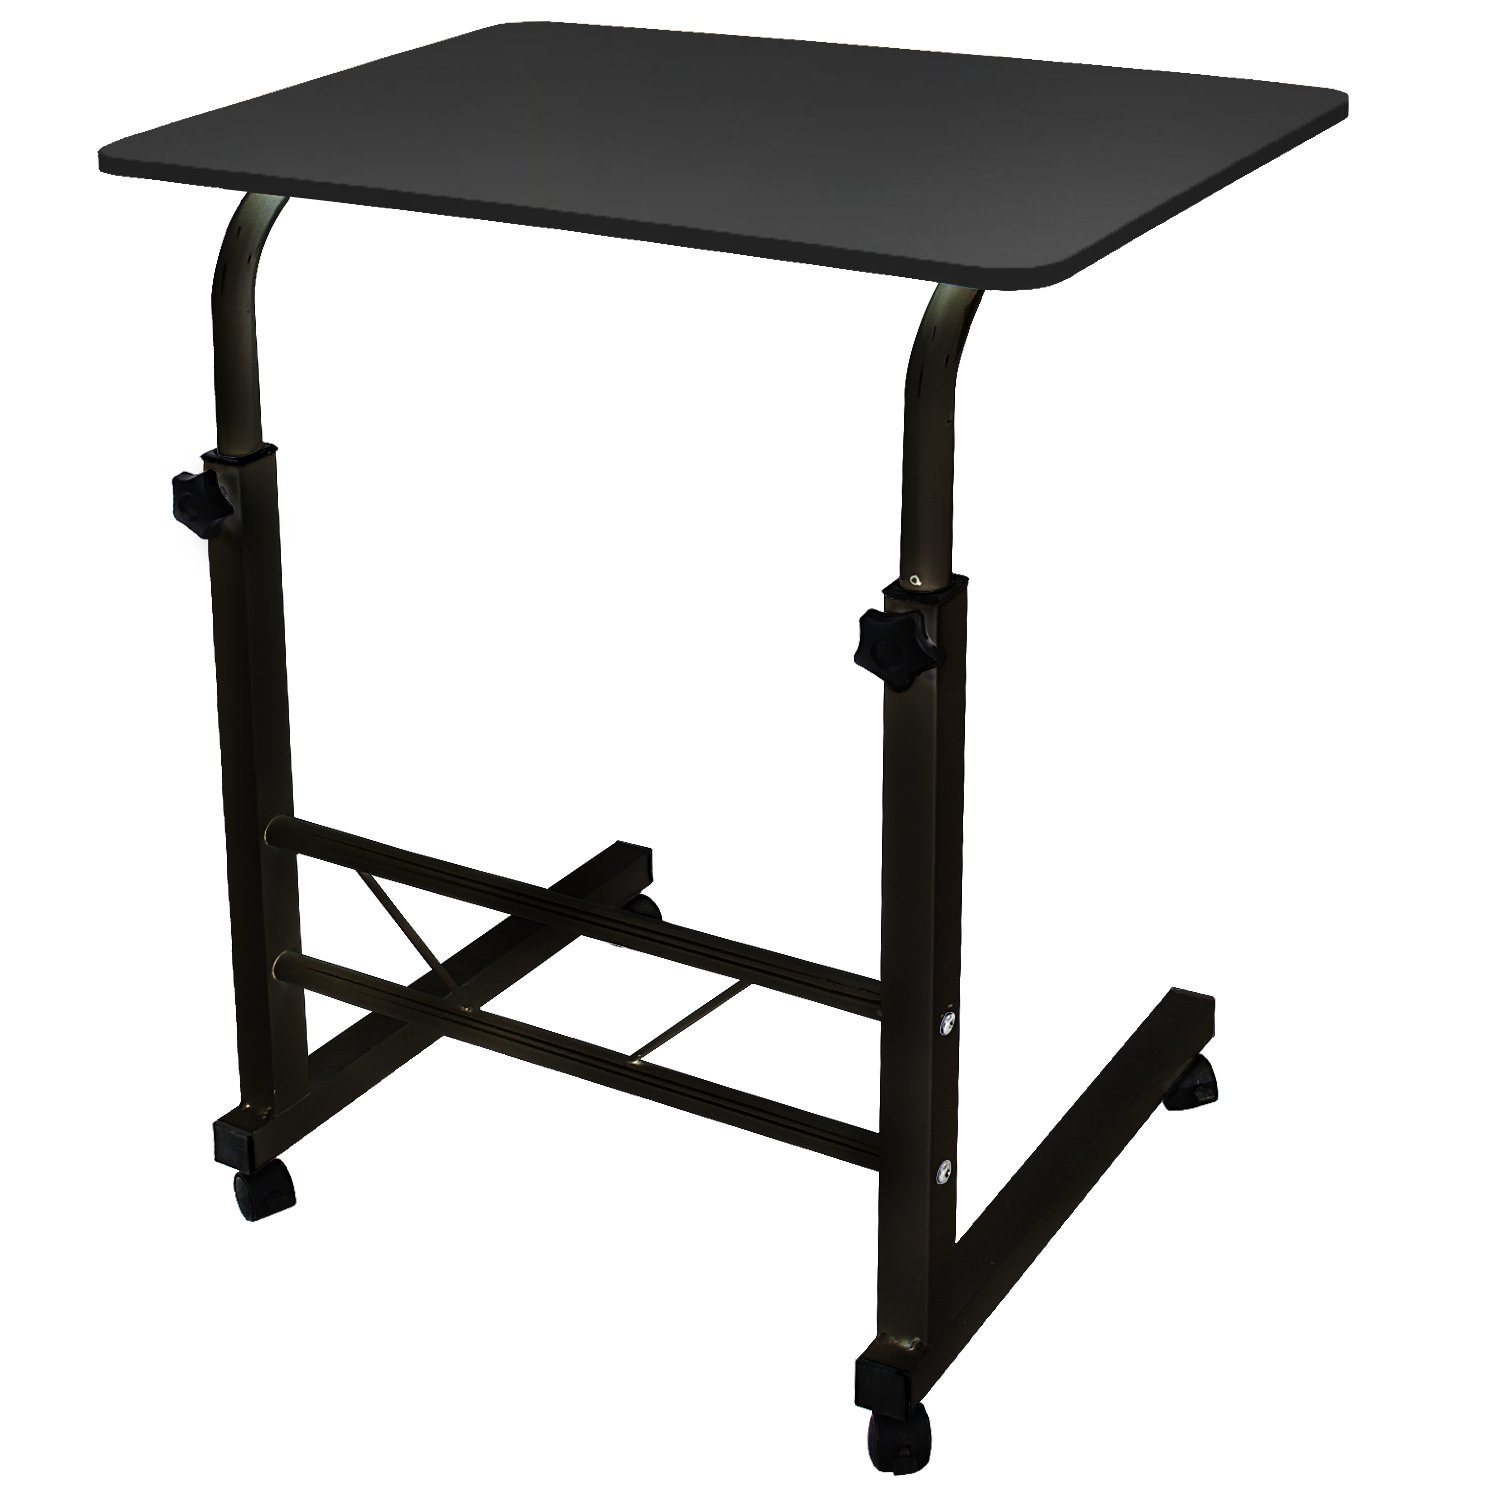 DL furniture - Adjustable Height Laptop Desktop Table Stand, Over Bed Side Table With Wheels | Metal Frame & Natural Surface (Black) by DL furniture